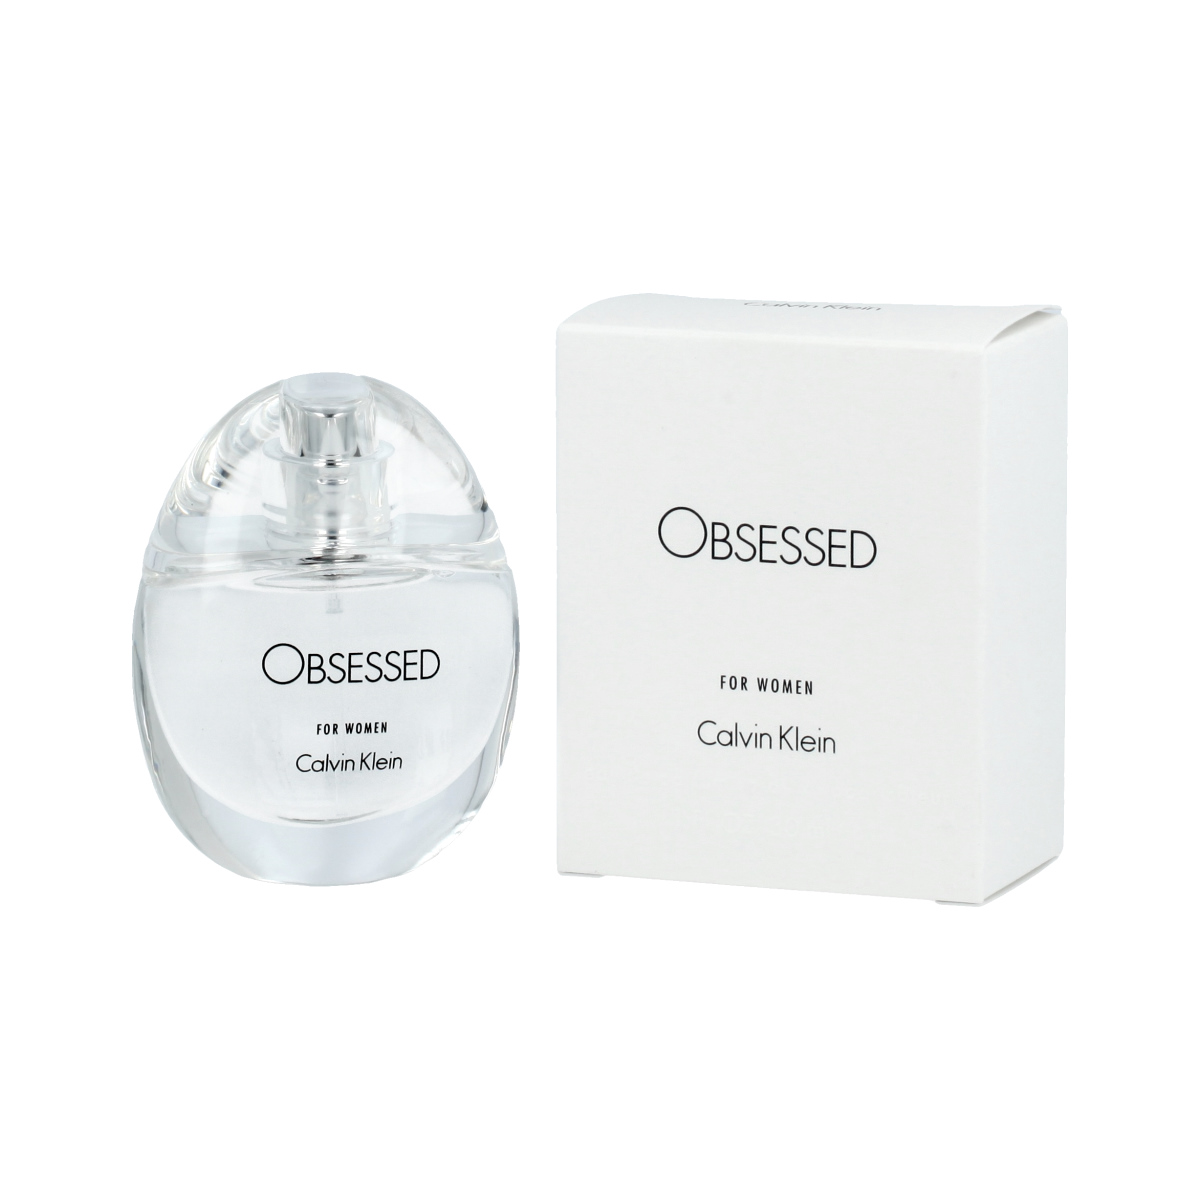 Calvin Klein Obsessed for Women Eau De Parfum 30 ml (woman) 91044